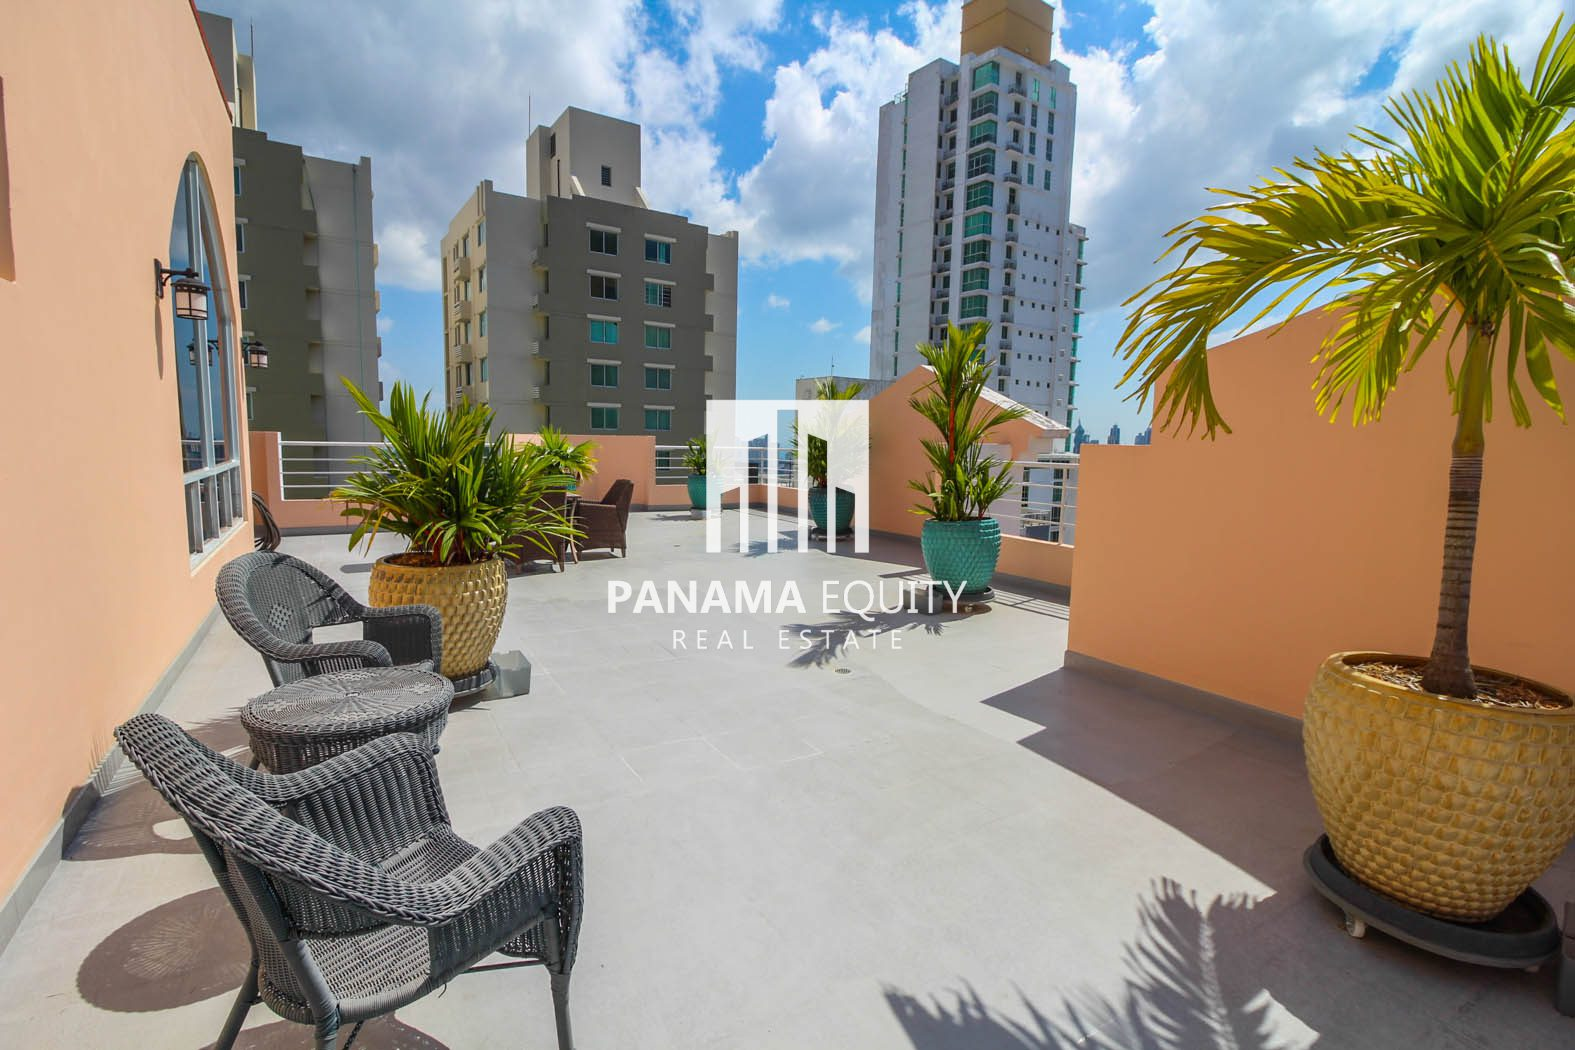 Rooftop Penthouse Reduced for Quick Sale!